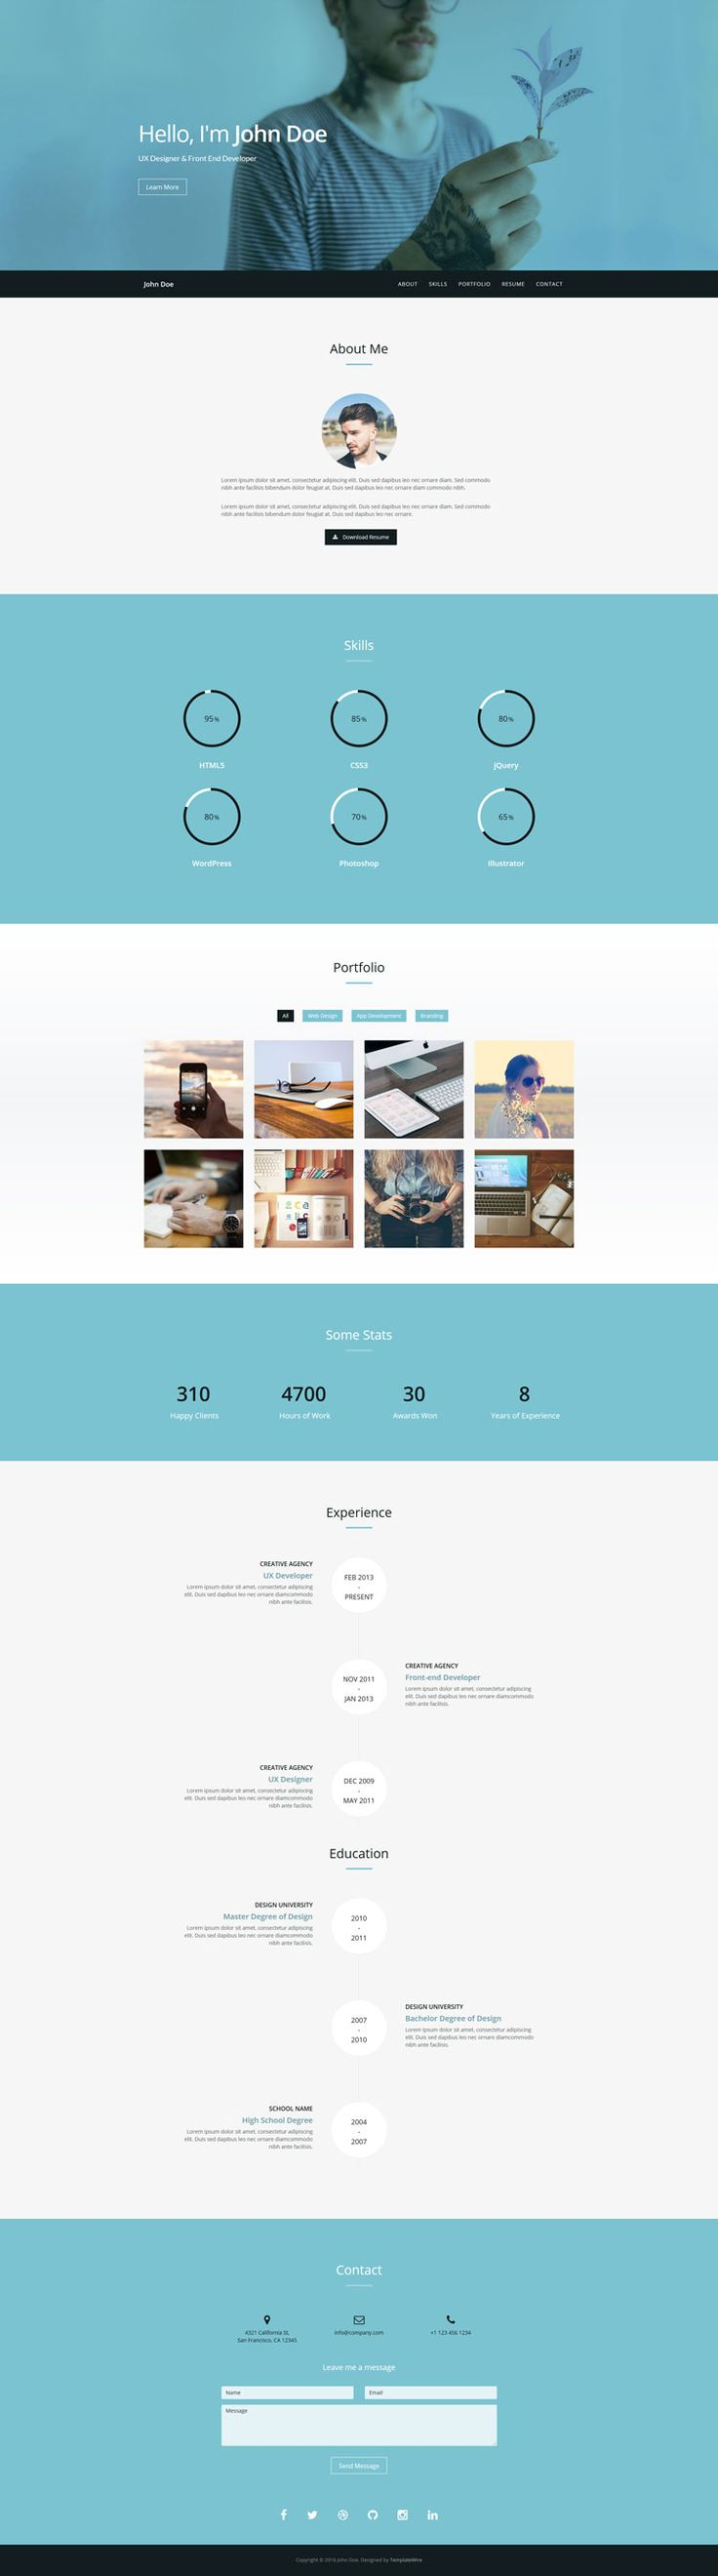 Verum is a free one page HTML resume / CV template built with Bootstrap. Features include responsive design, filterable portfolio, resume section, working contact form and more.